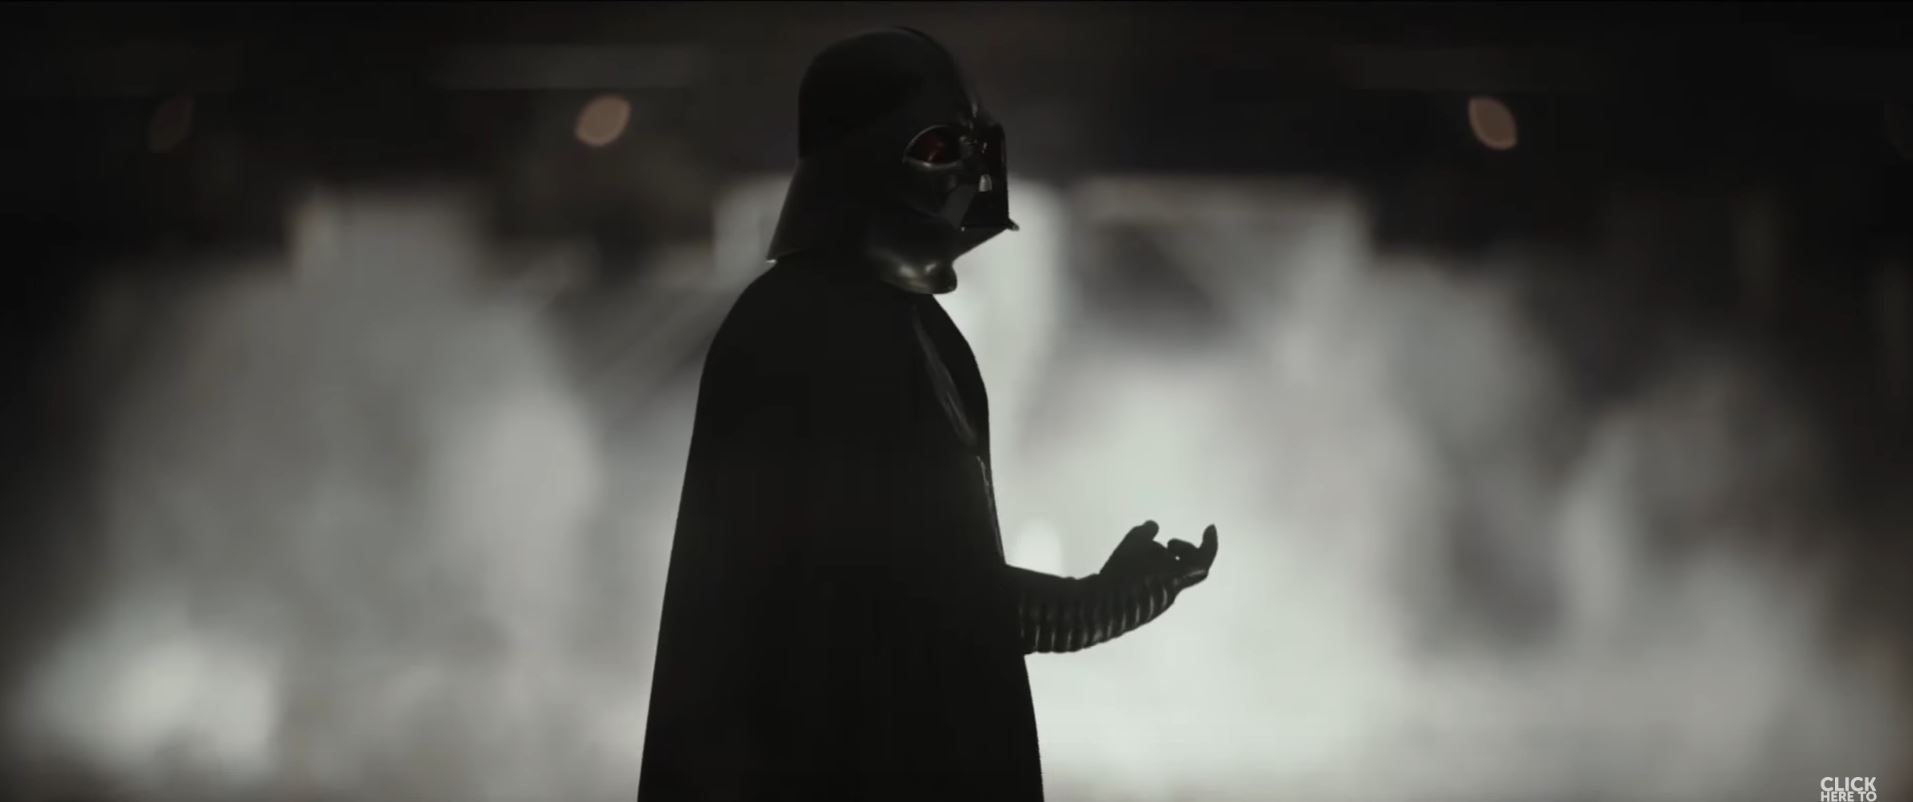 han solo rogue one a star wars story trailer darth vader